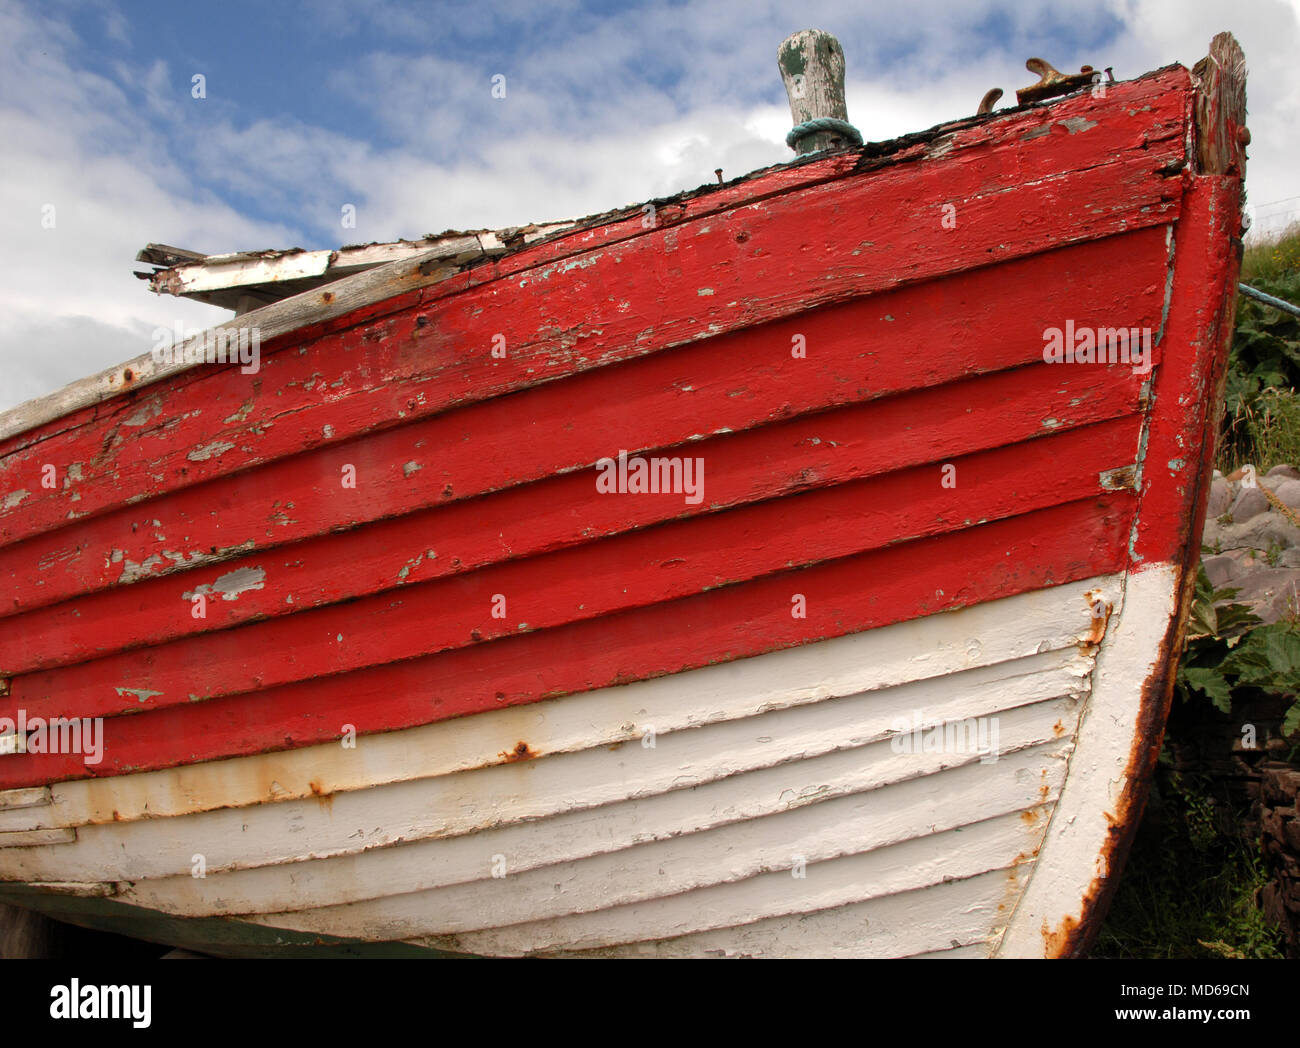 Red and White Rowing Boat moored on the Westcoast of Ireland - Stock Image